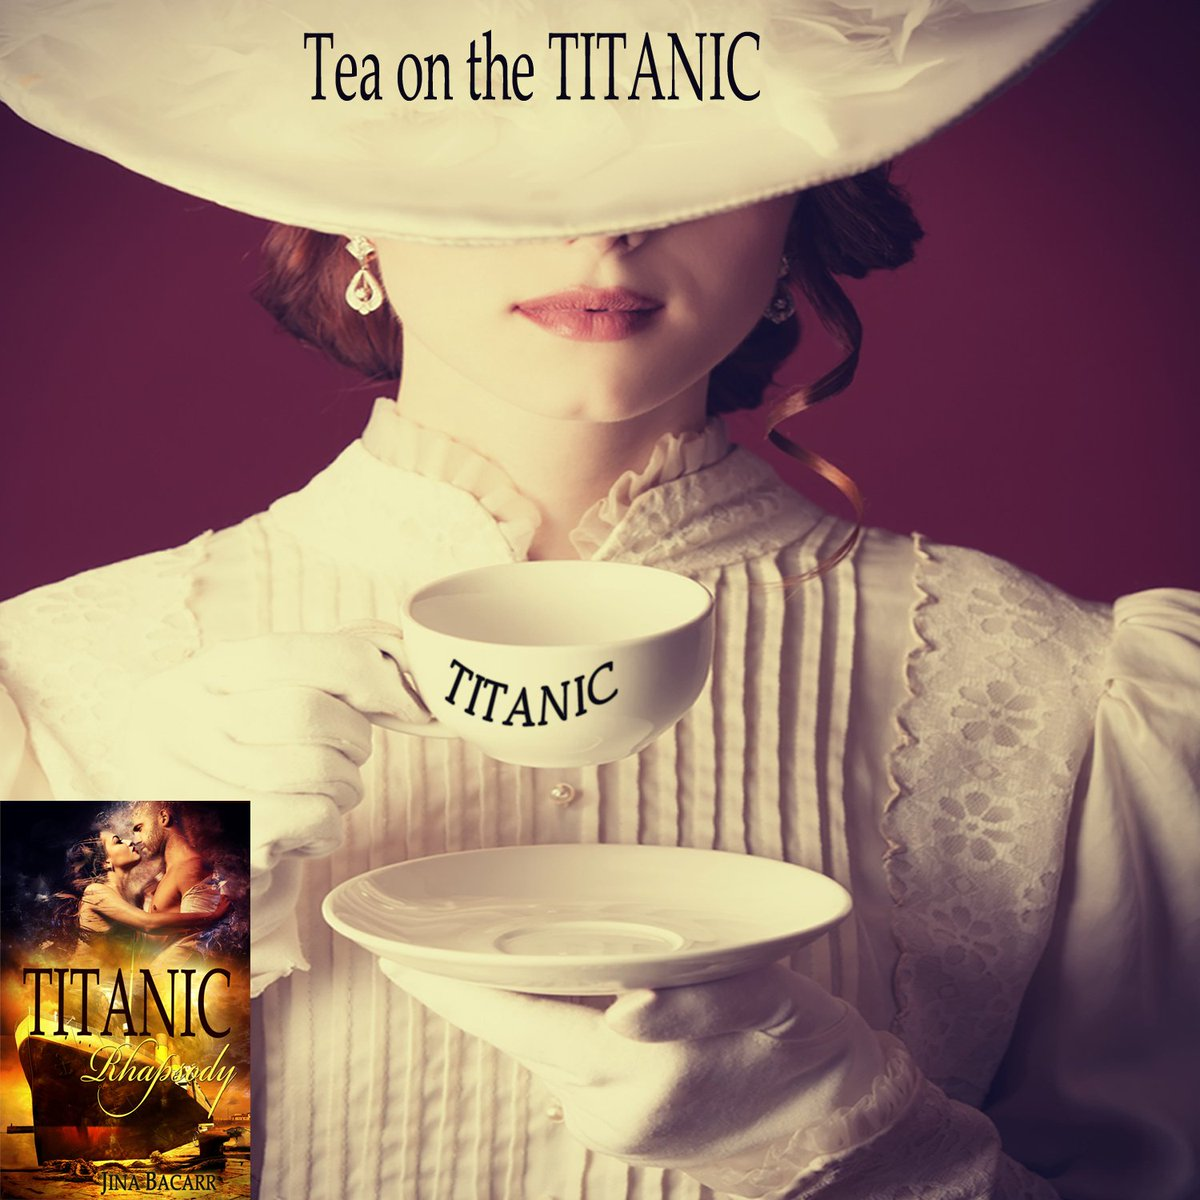 Aboard Titanic sexy gambler in love w/ two women . . . who will survive? #Titanic Rhapsody  http:// a.co/1wSE0rb  &nbsp;   #IARTG #AfternoonTeaWeek <br>http://pic.twitter.com/KJuLESzMiZ